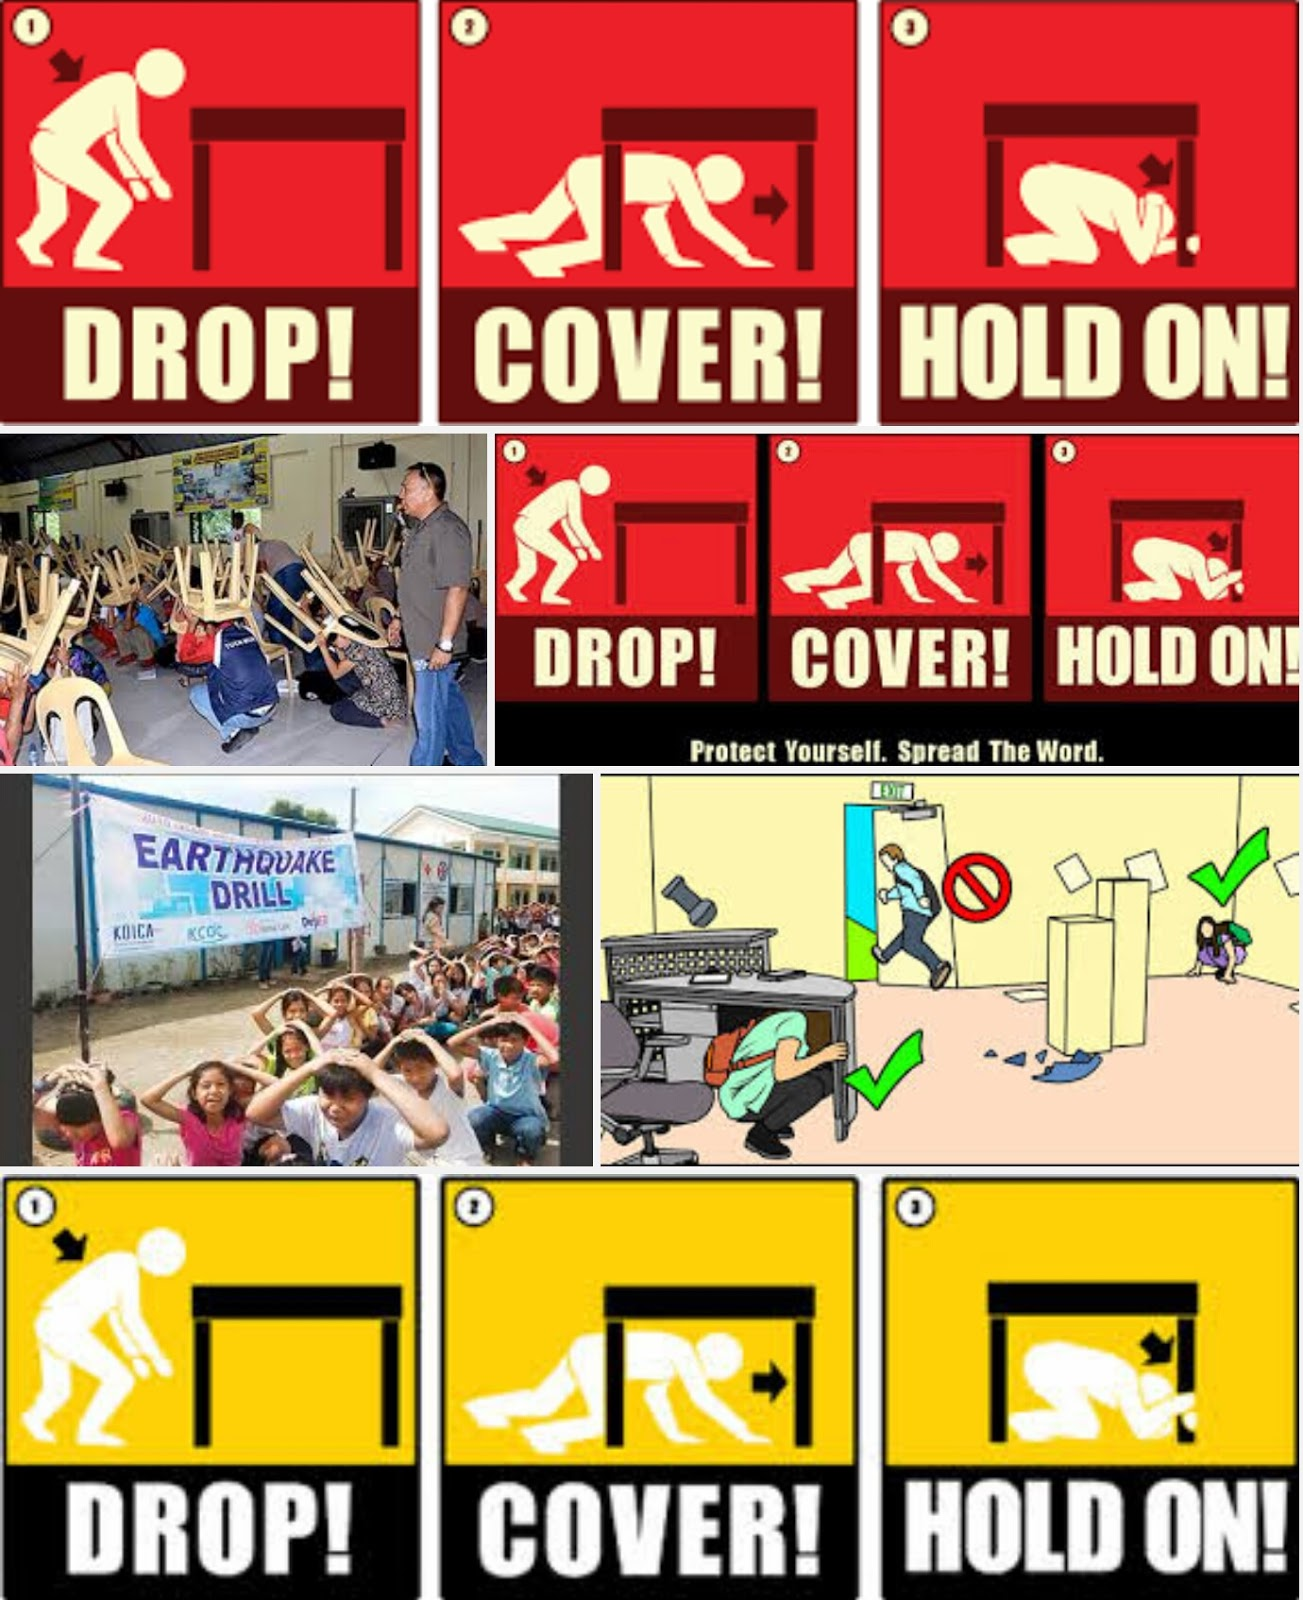 earthquake drill Since all 50 states and the district of columbia face some earthquake risk, the great shakeout earthquake drill on october 18, 2018 at 10:18 am is a good time to ensure home and business owners.